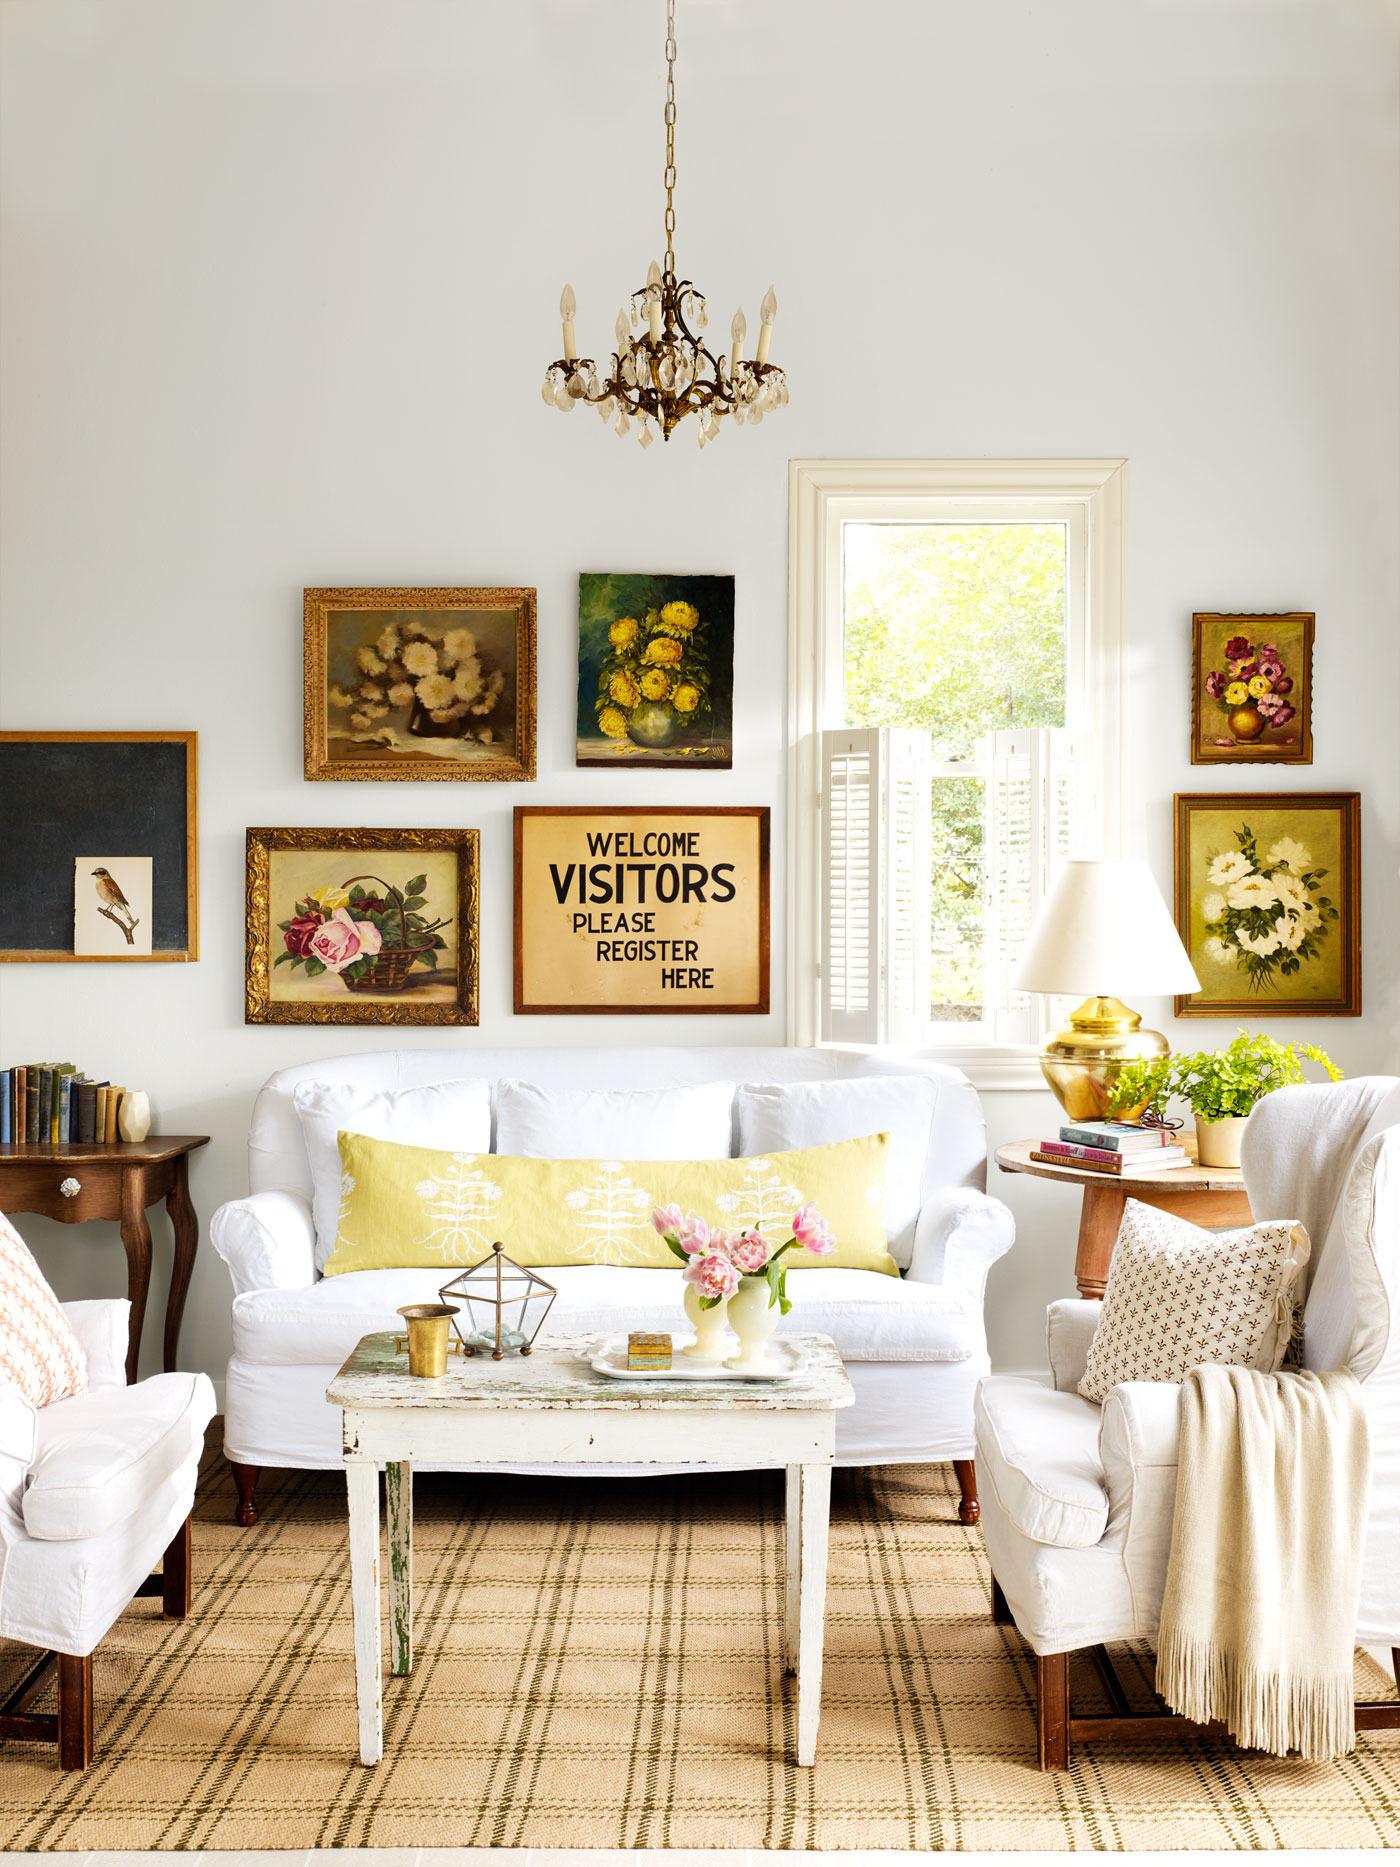 10 Shabby Chic Living Room Ideas   Shabby Chic Decorating Inspiration For  Living Rooms